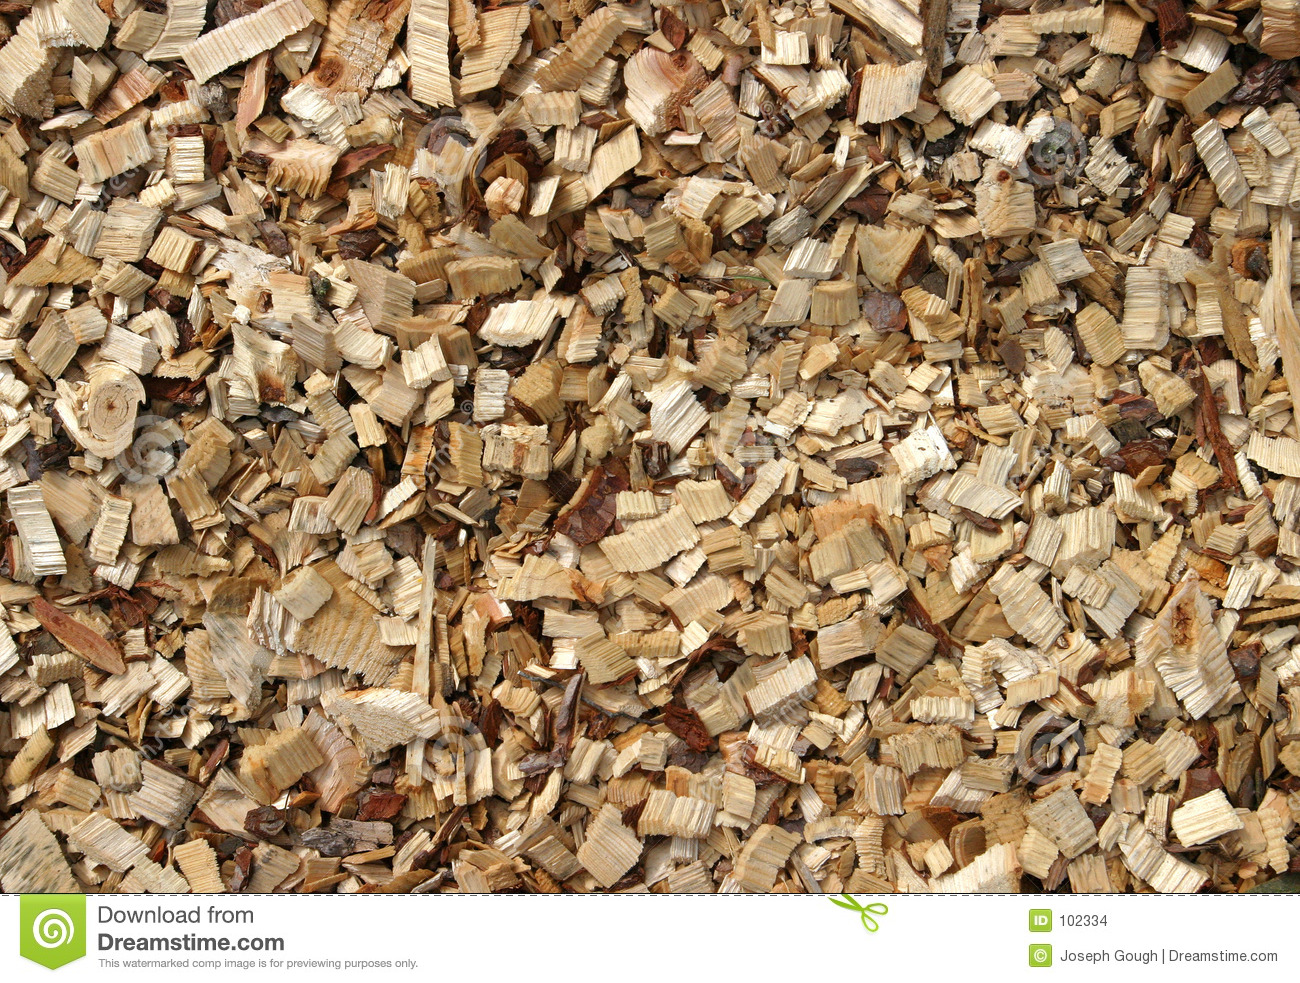 Chippings de madeira